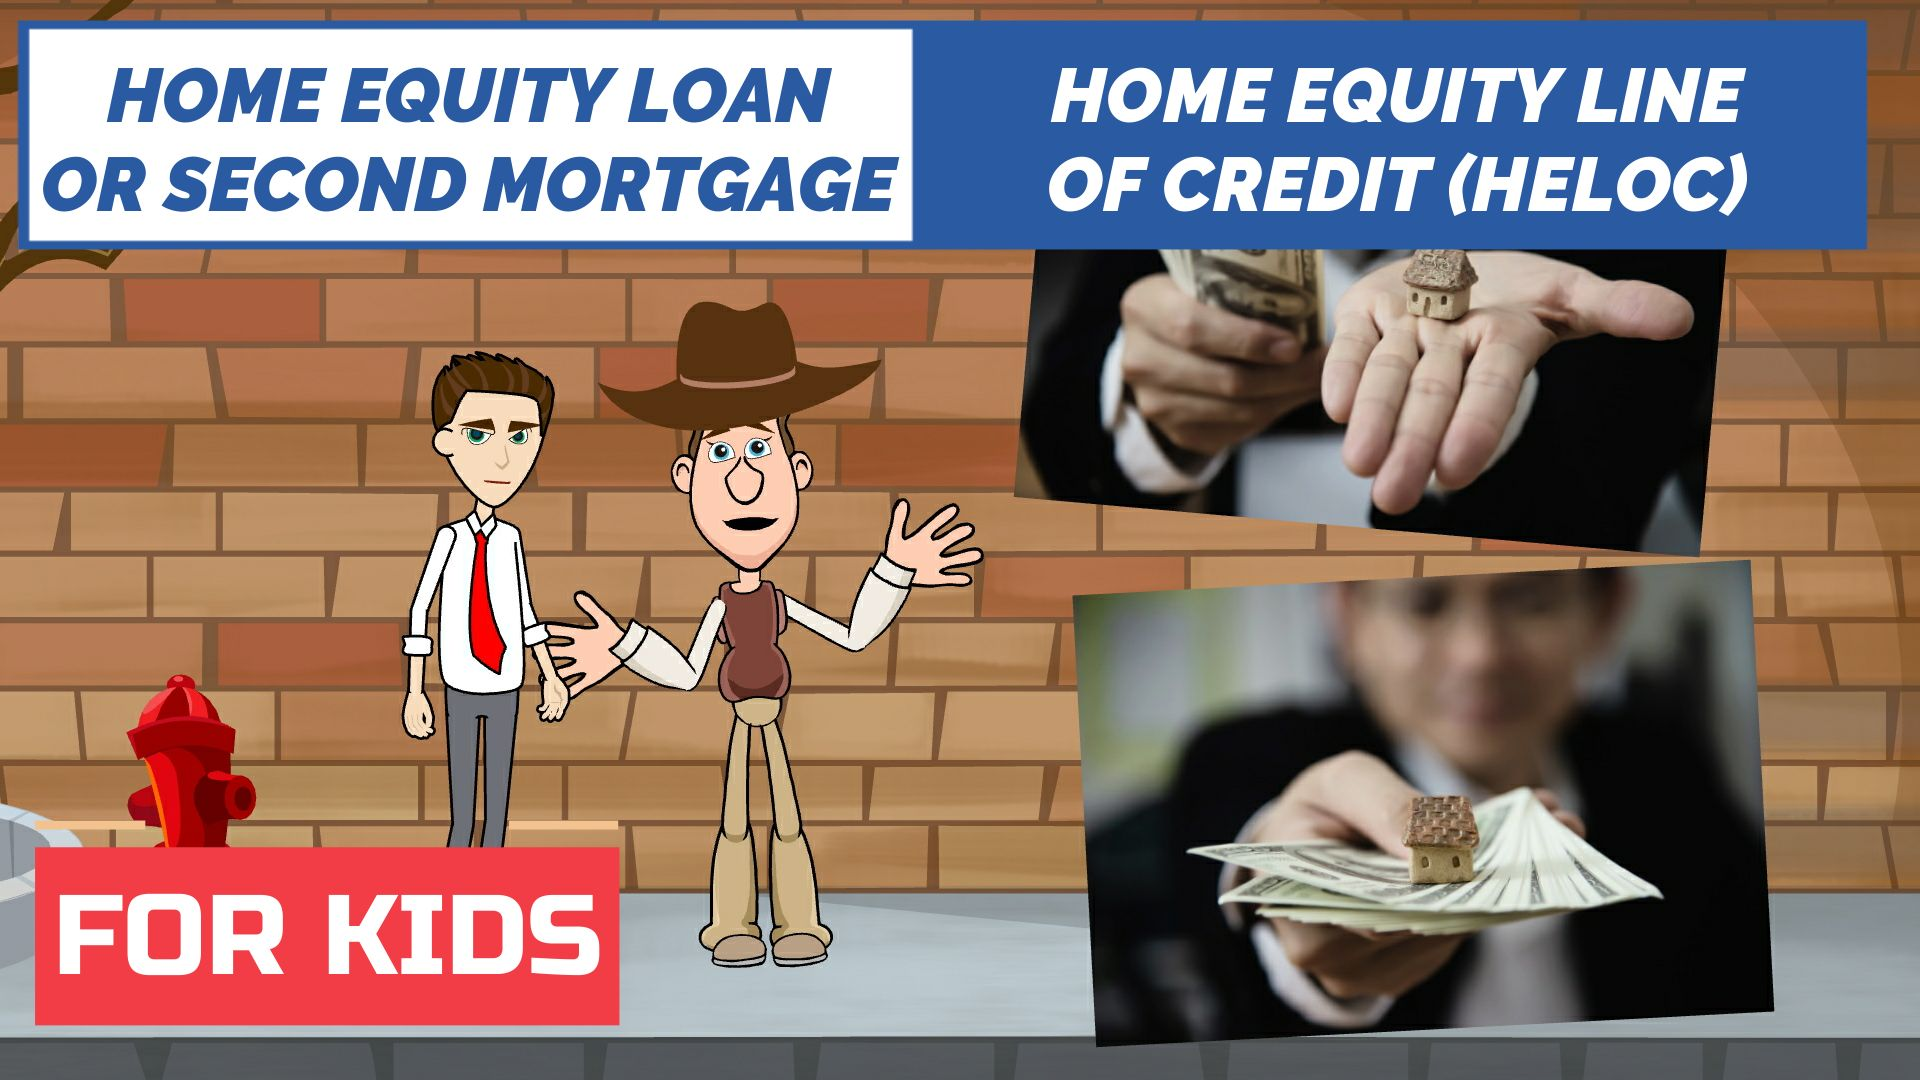 Home Equity Loan vs Home Equity Line of Credit - A Comparison